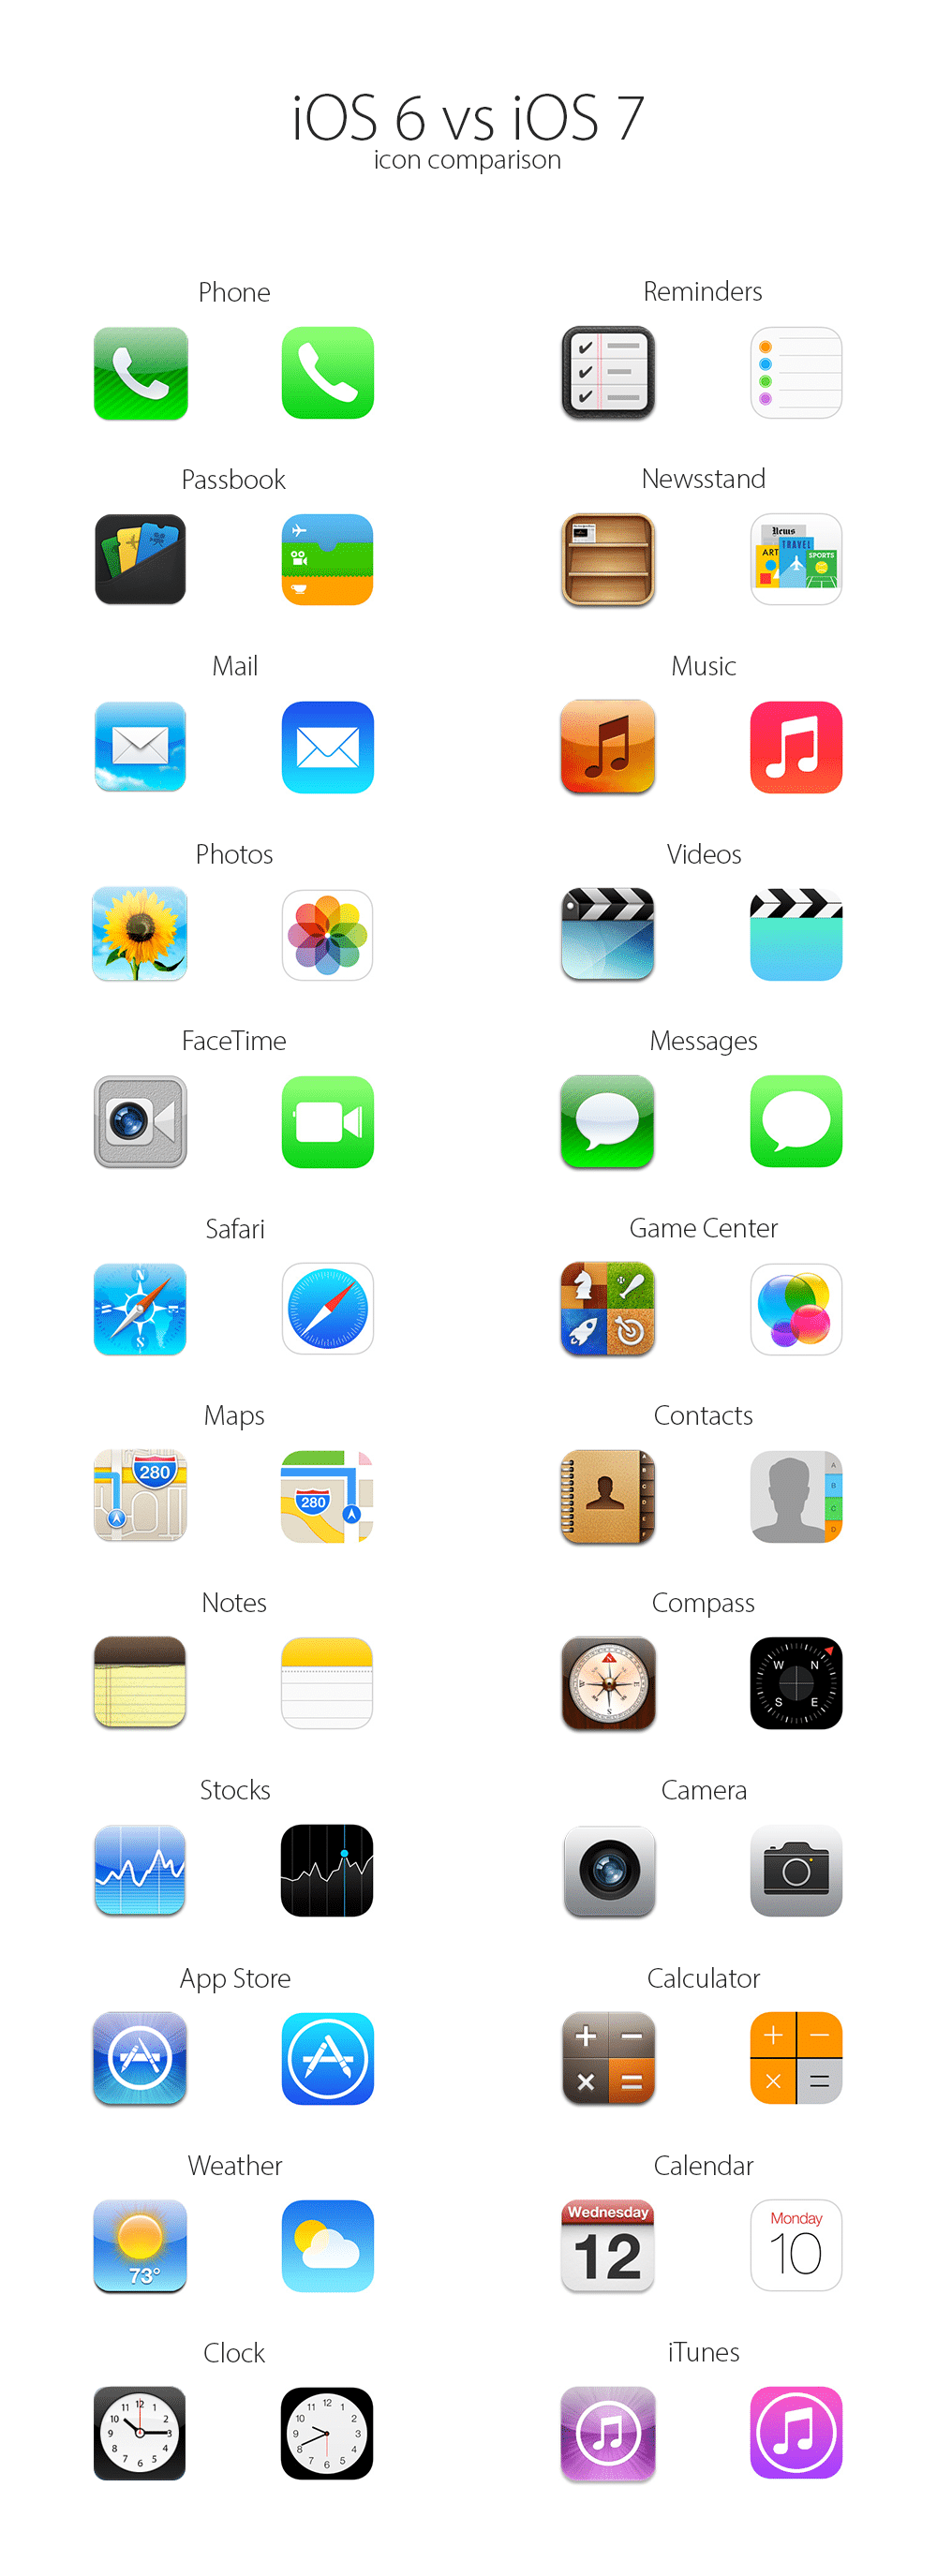 iOS 6 vs. iOS 7: An Icon Comparison [Infographic]